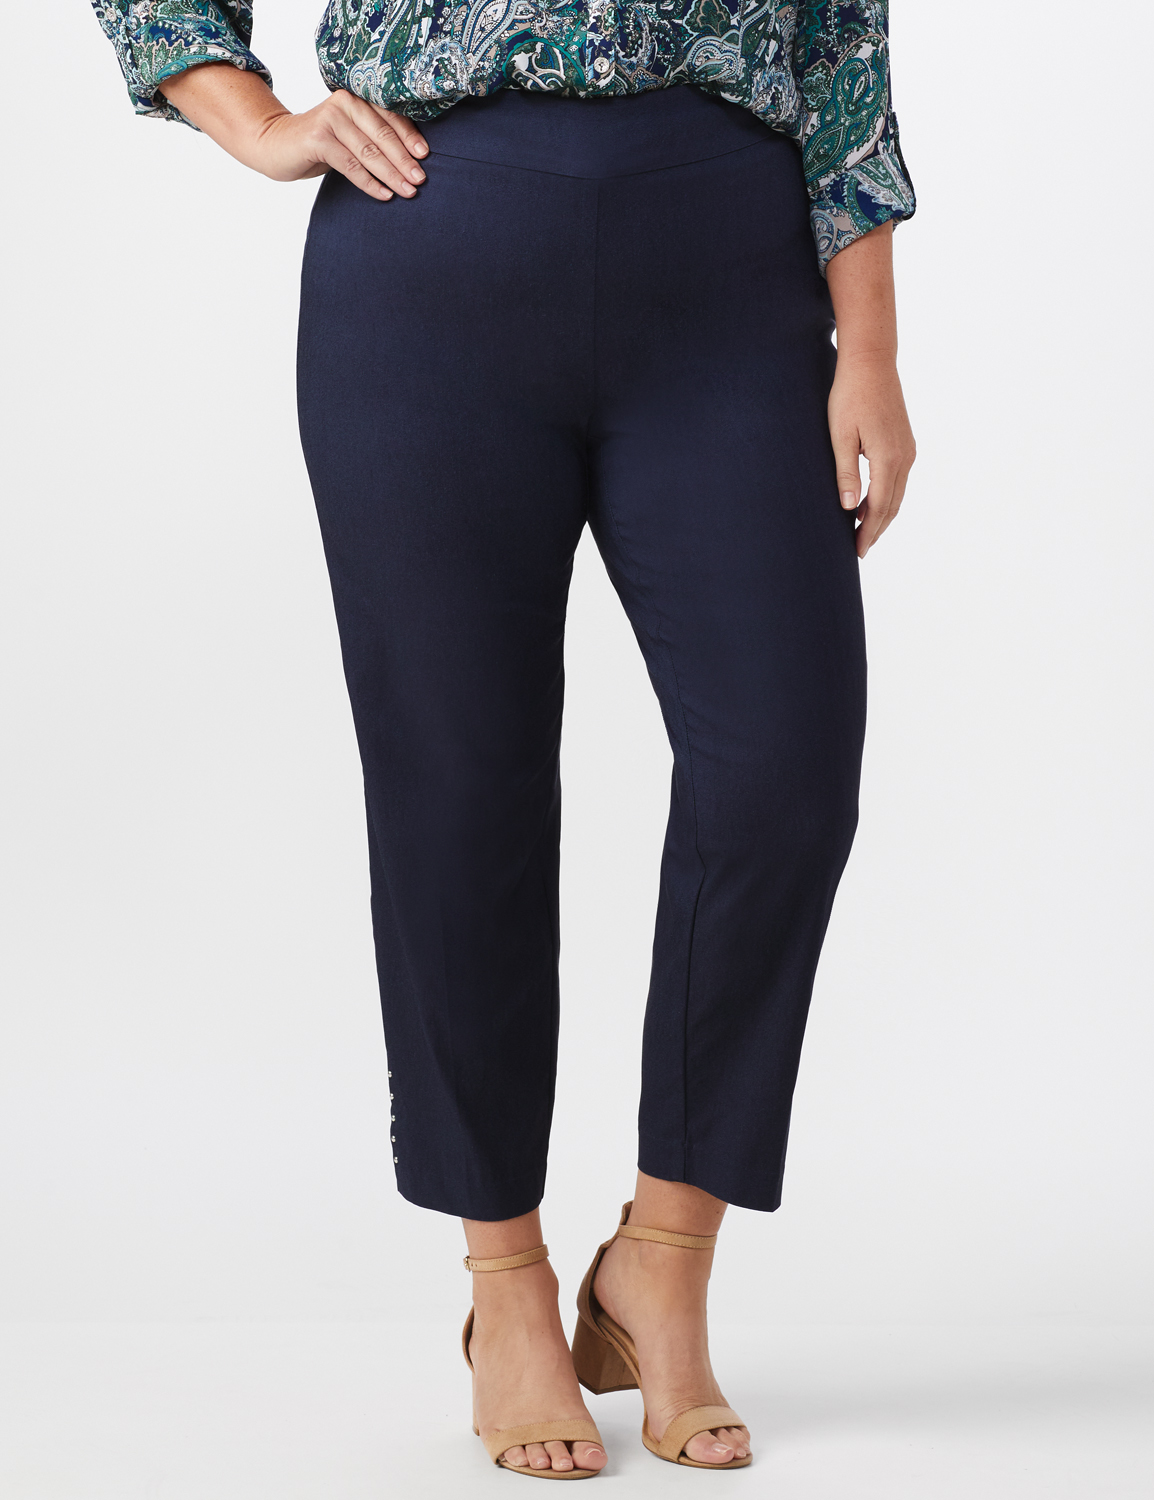 Roz & Ali Solid Superstretch Tummy Panel Pull On Ankle Pants With Rivet Trim Bottom - Plus -Dark Denim - Front